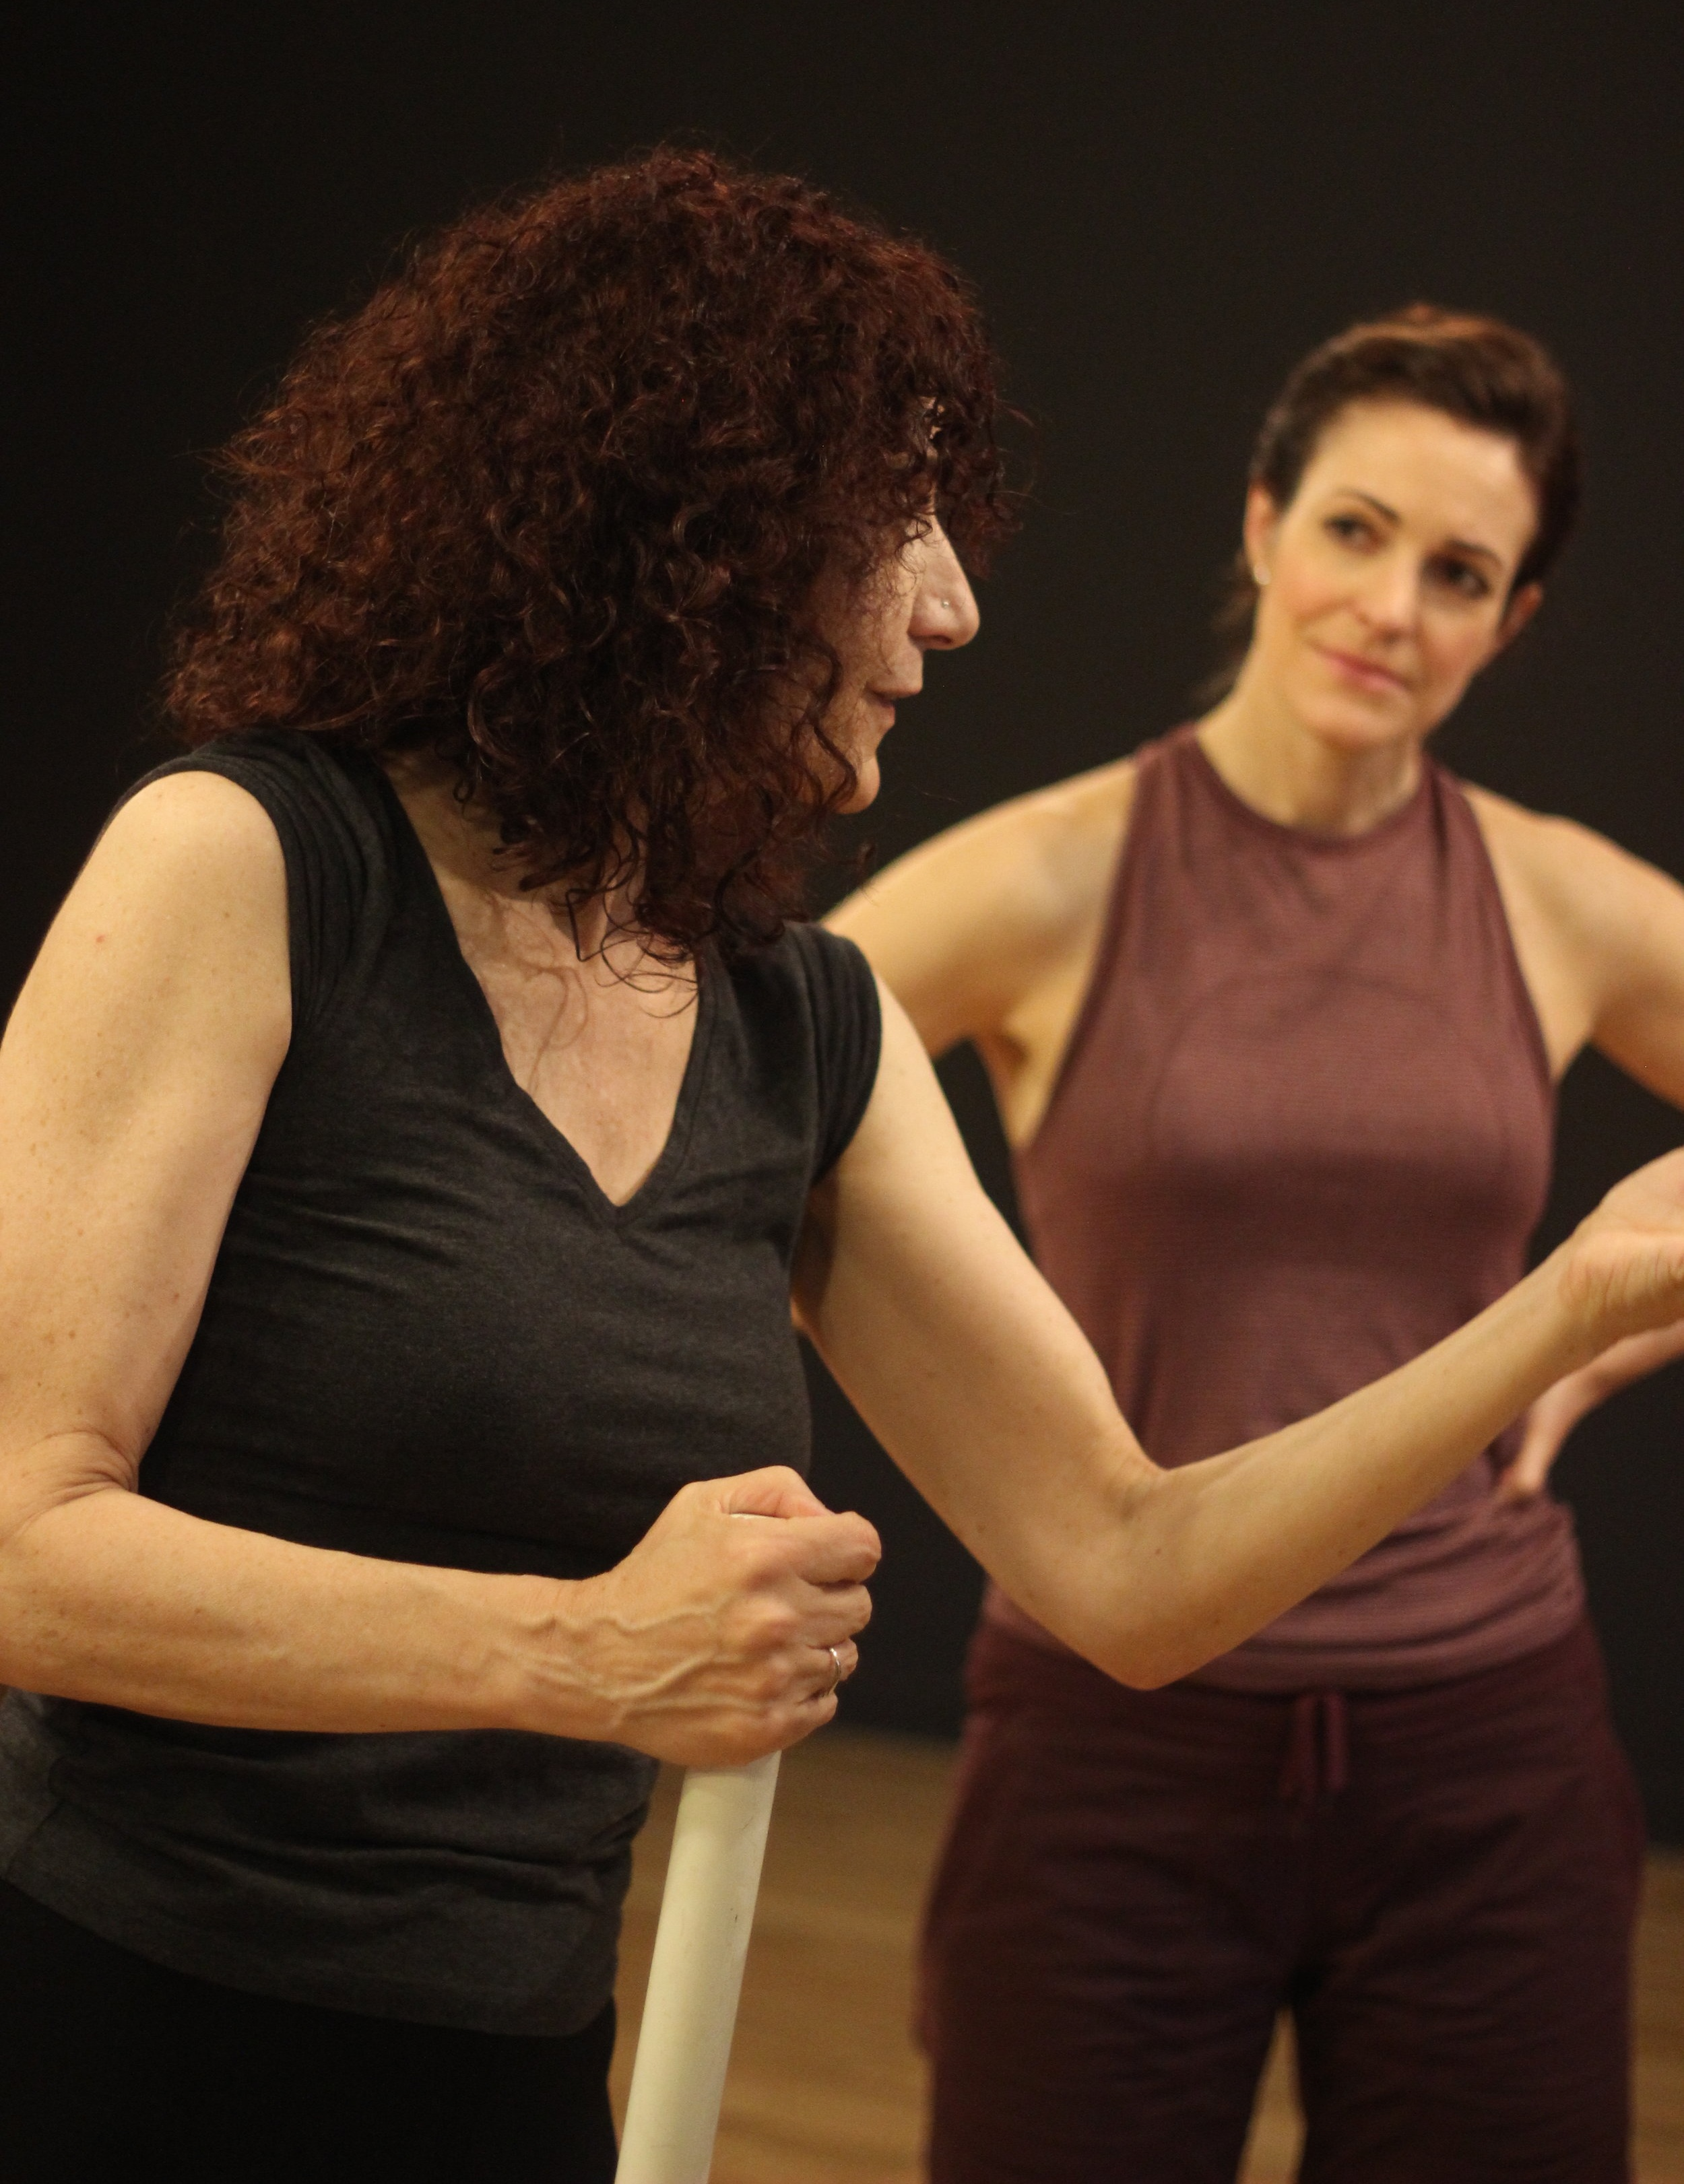 Margolis Method engages the whole actor to create theatre with every breath